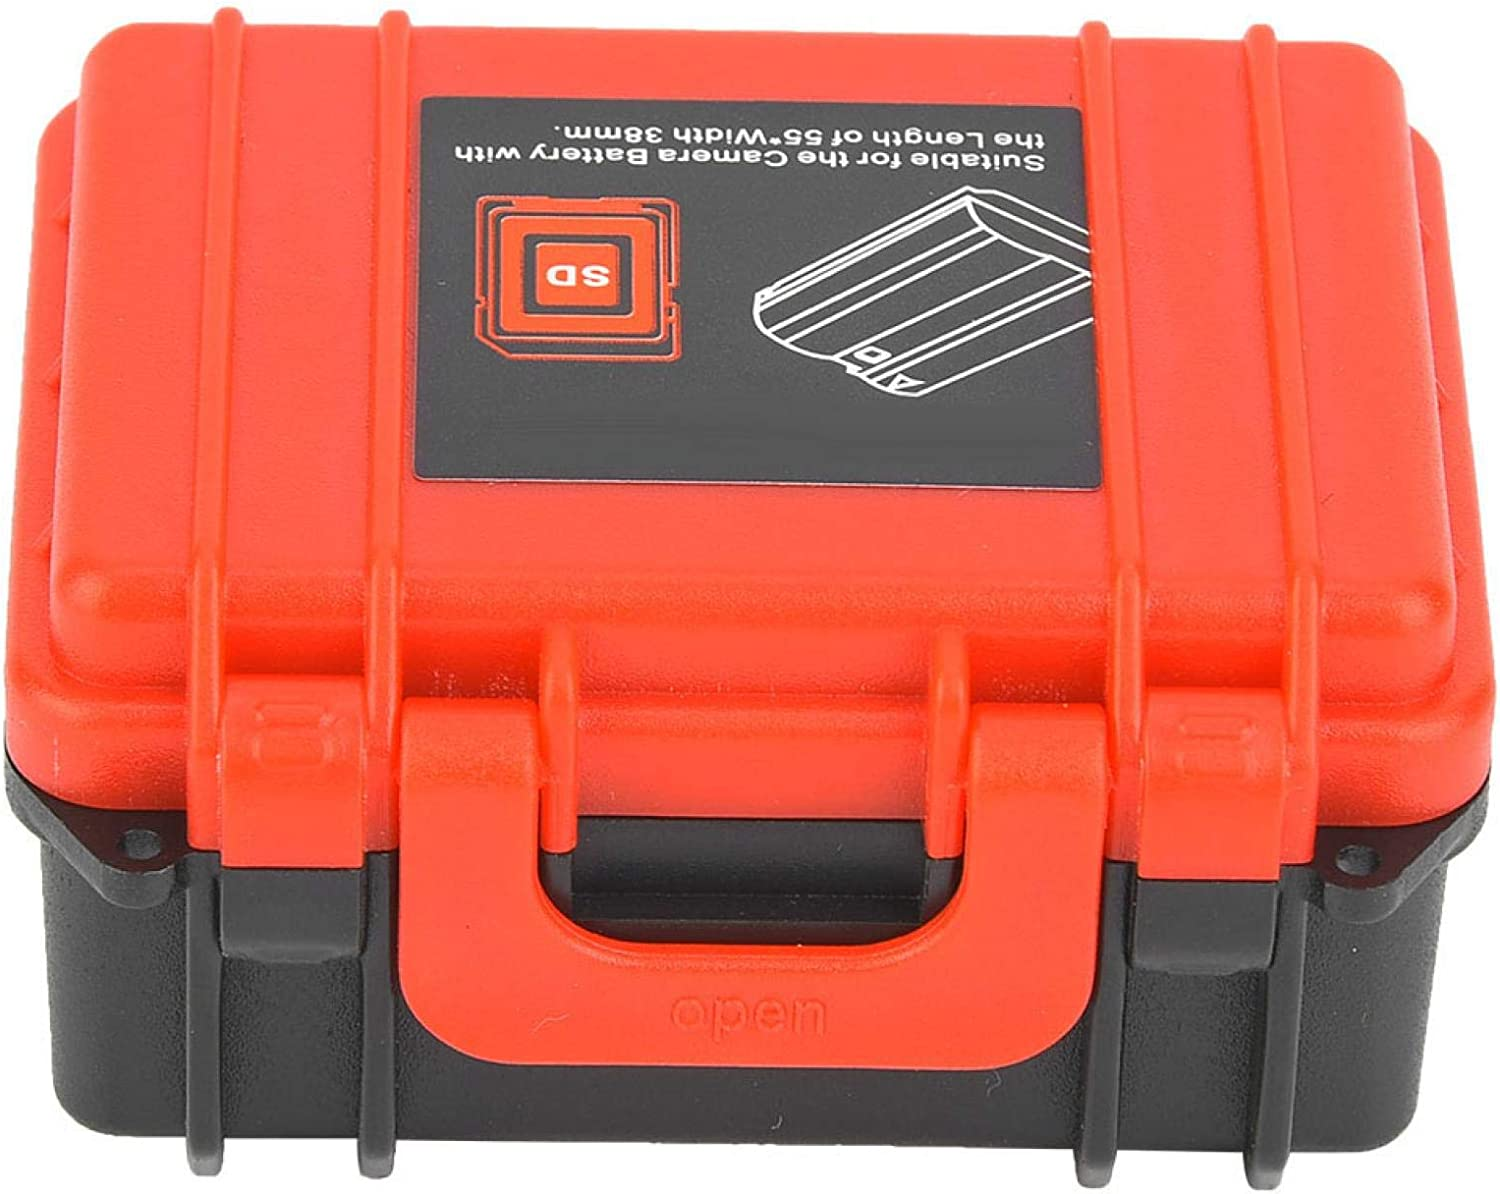 Surebuy Camera Battery Storage Max 48% OFF Box Financial sales sale Lightweight Portable Came and